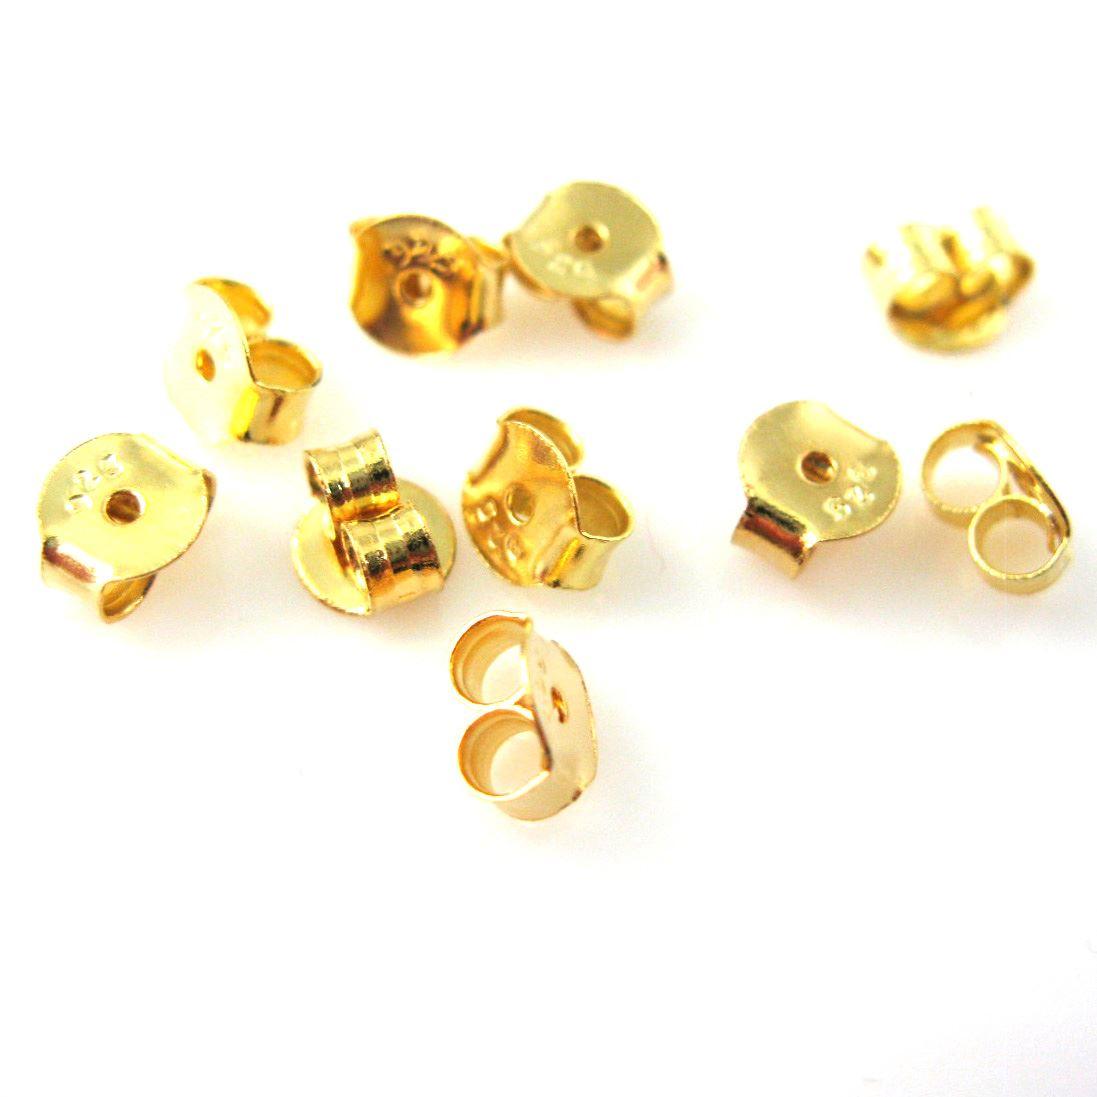 22K Gold Plated over Sterling Silver Butterfly Earring Post Backs Earnuts (5 pairs - 10 pcs)